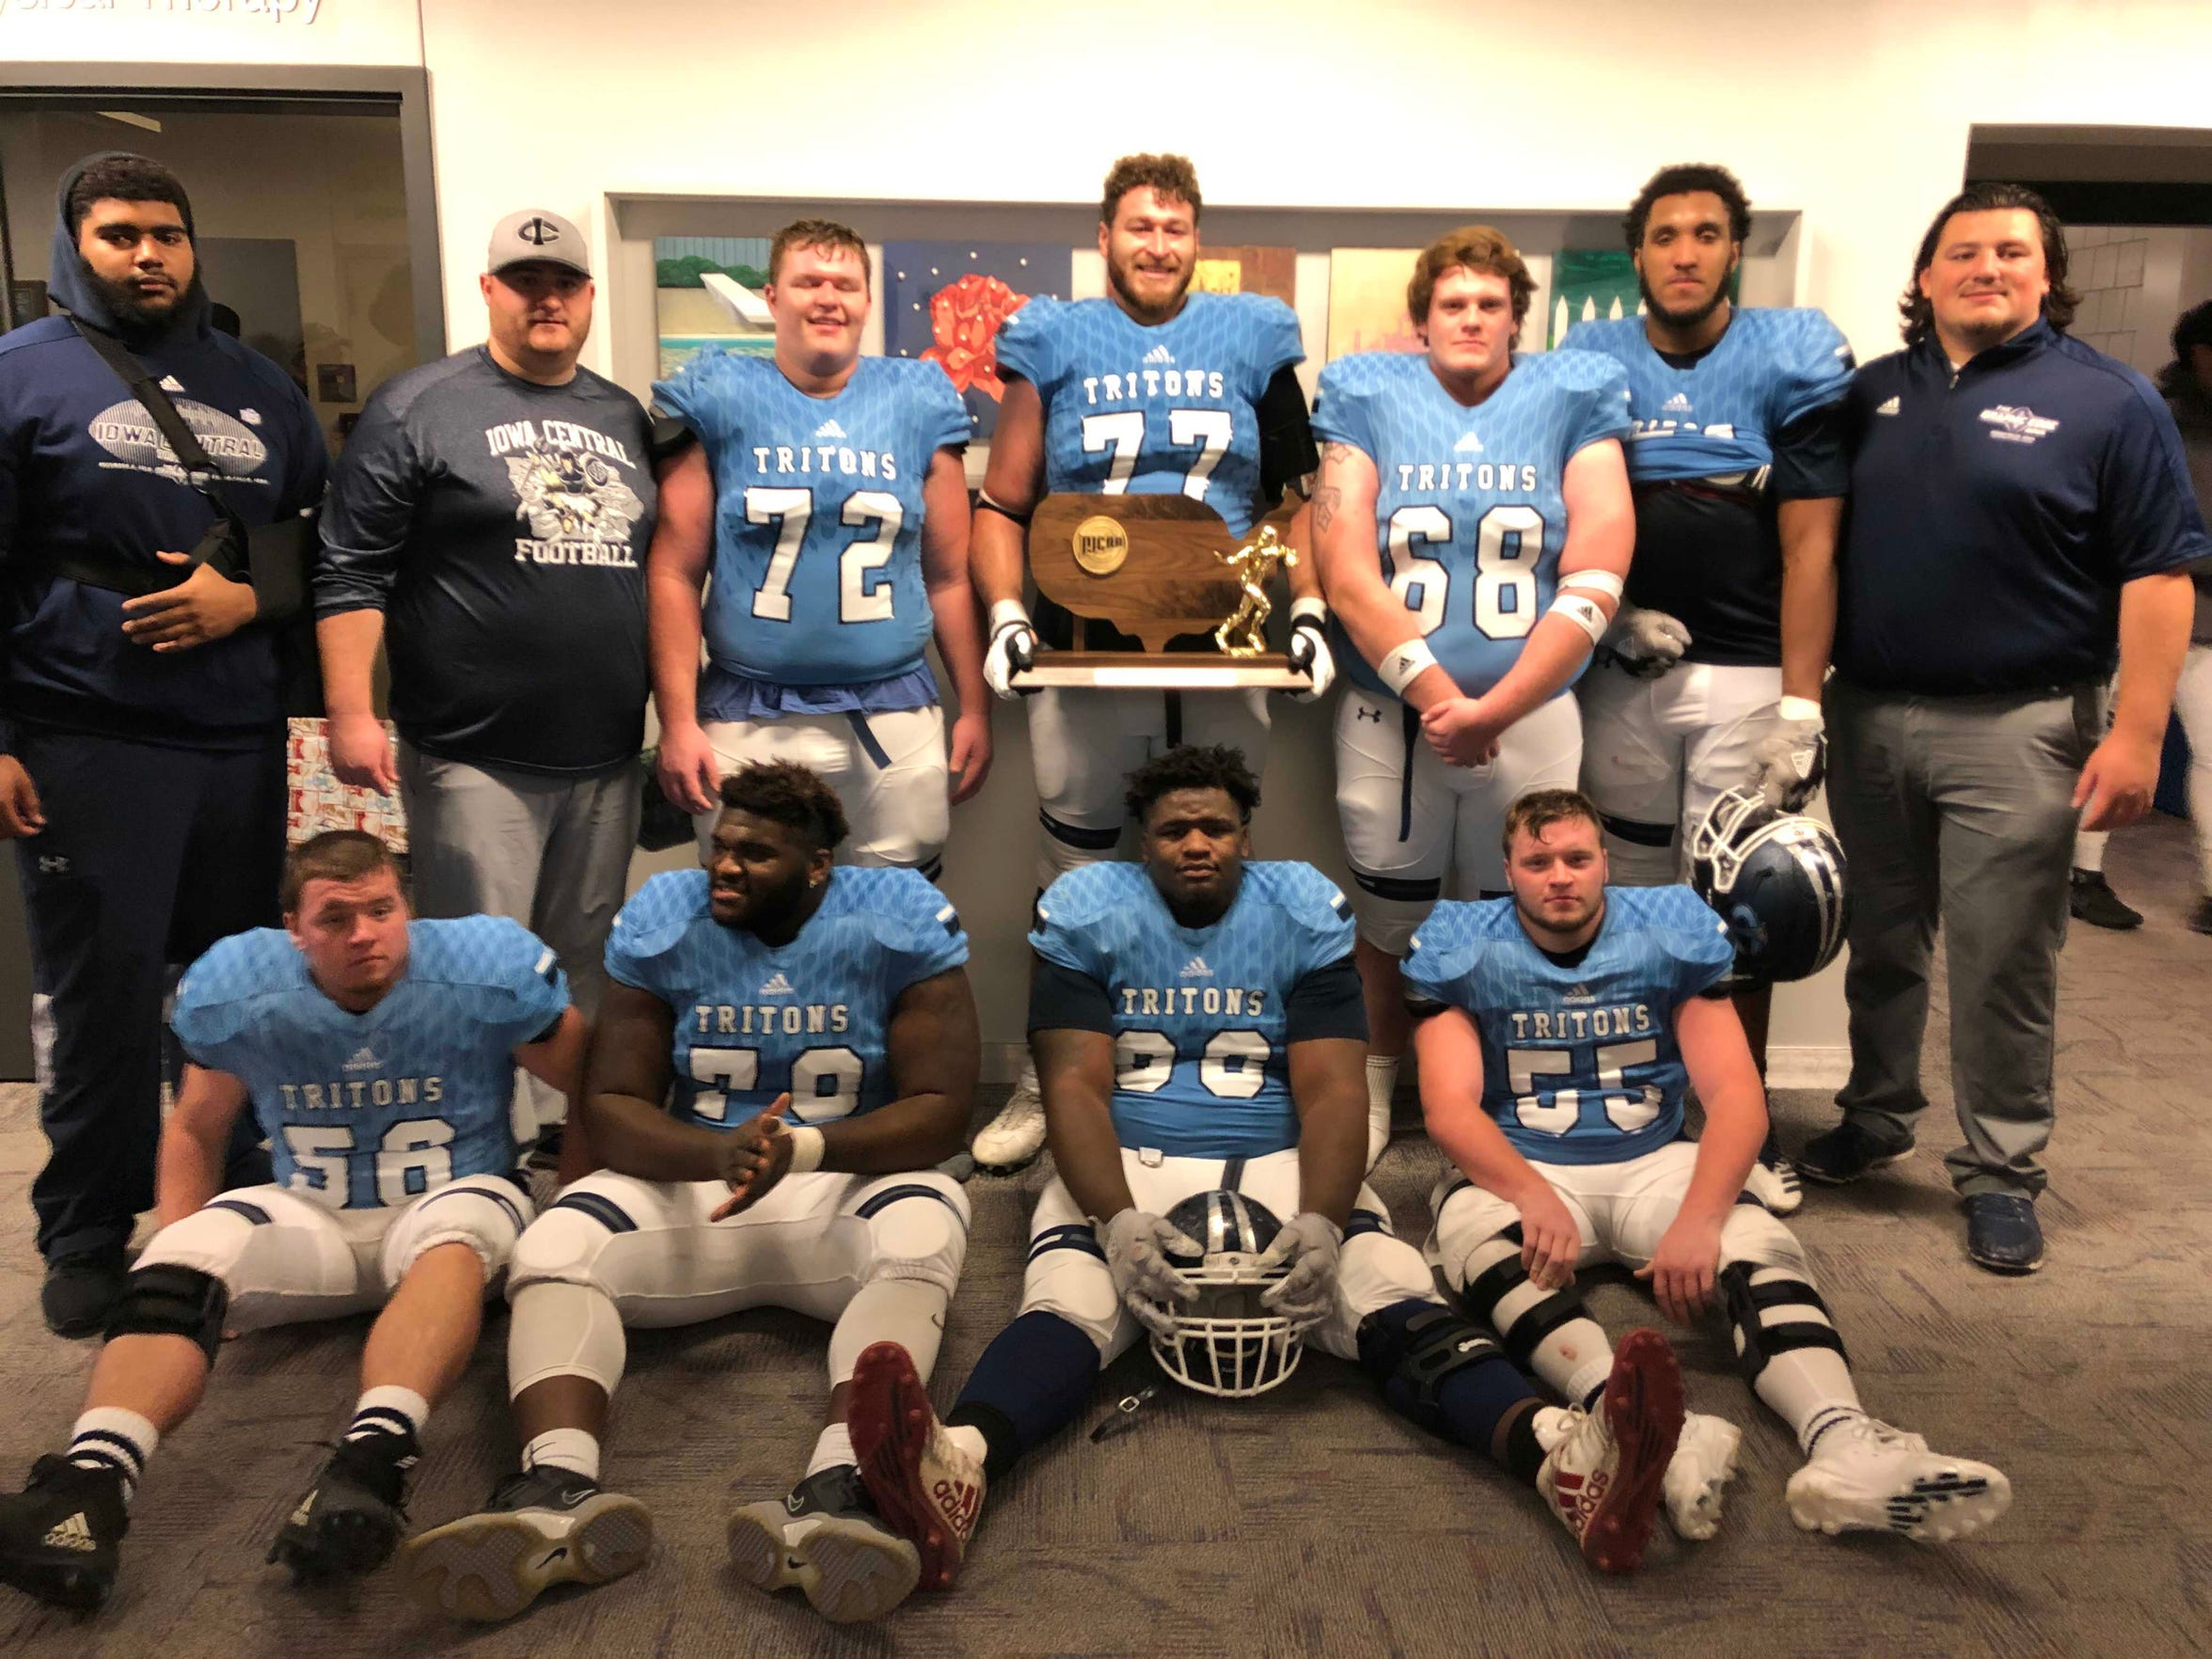 Brishaun Horne (77) poses with his fellow linemen at Iowa Central Community College.